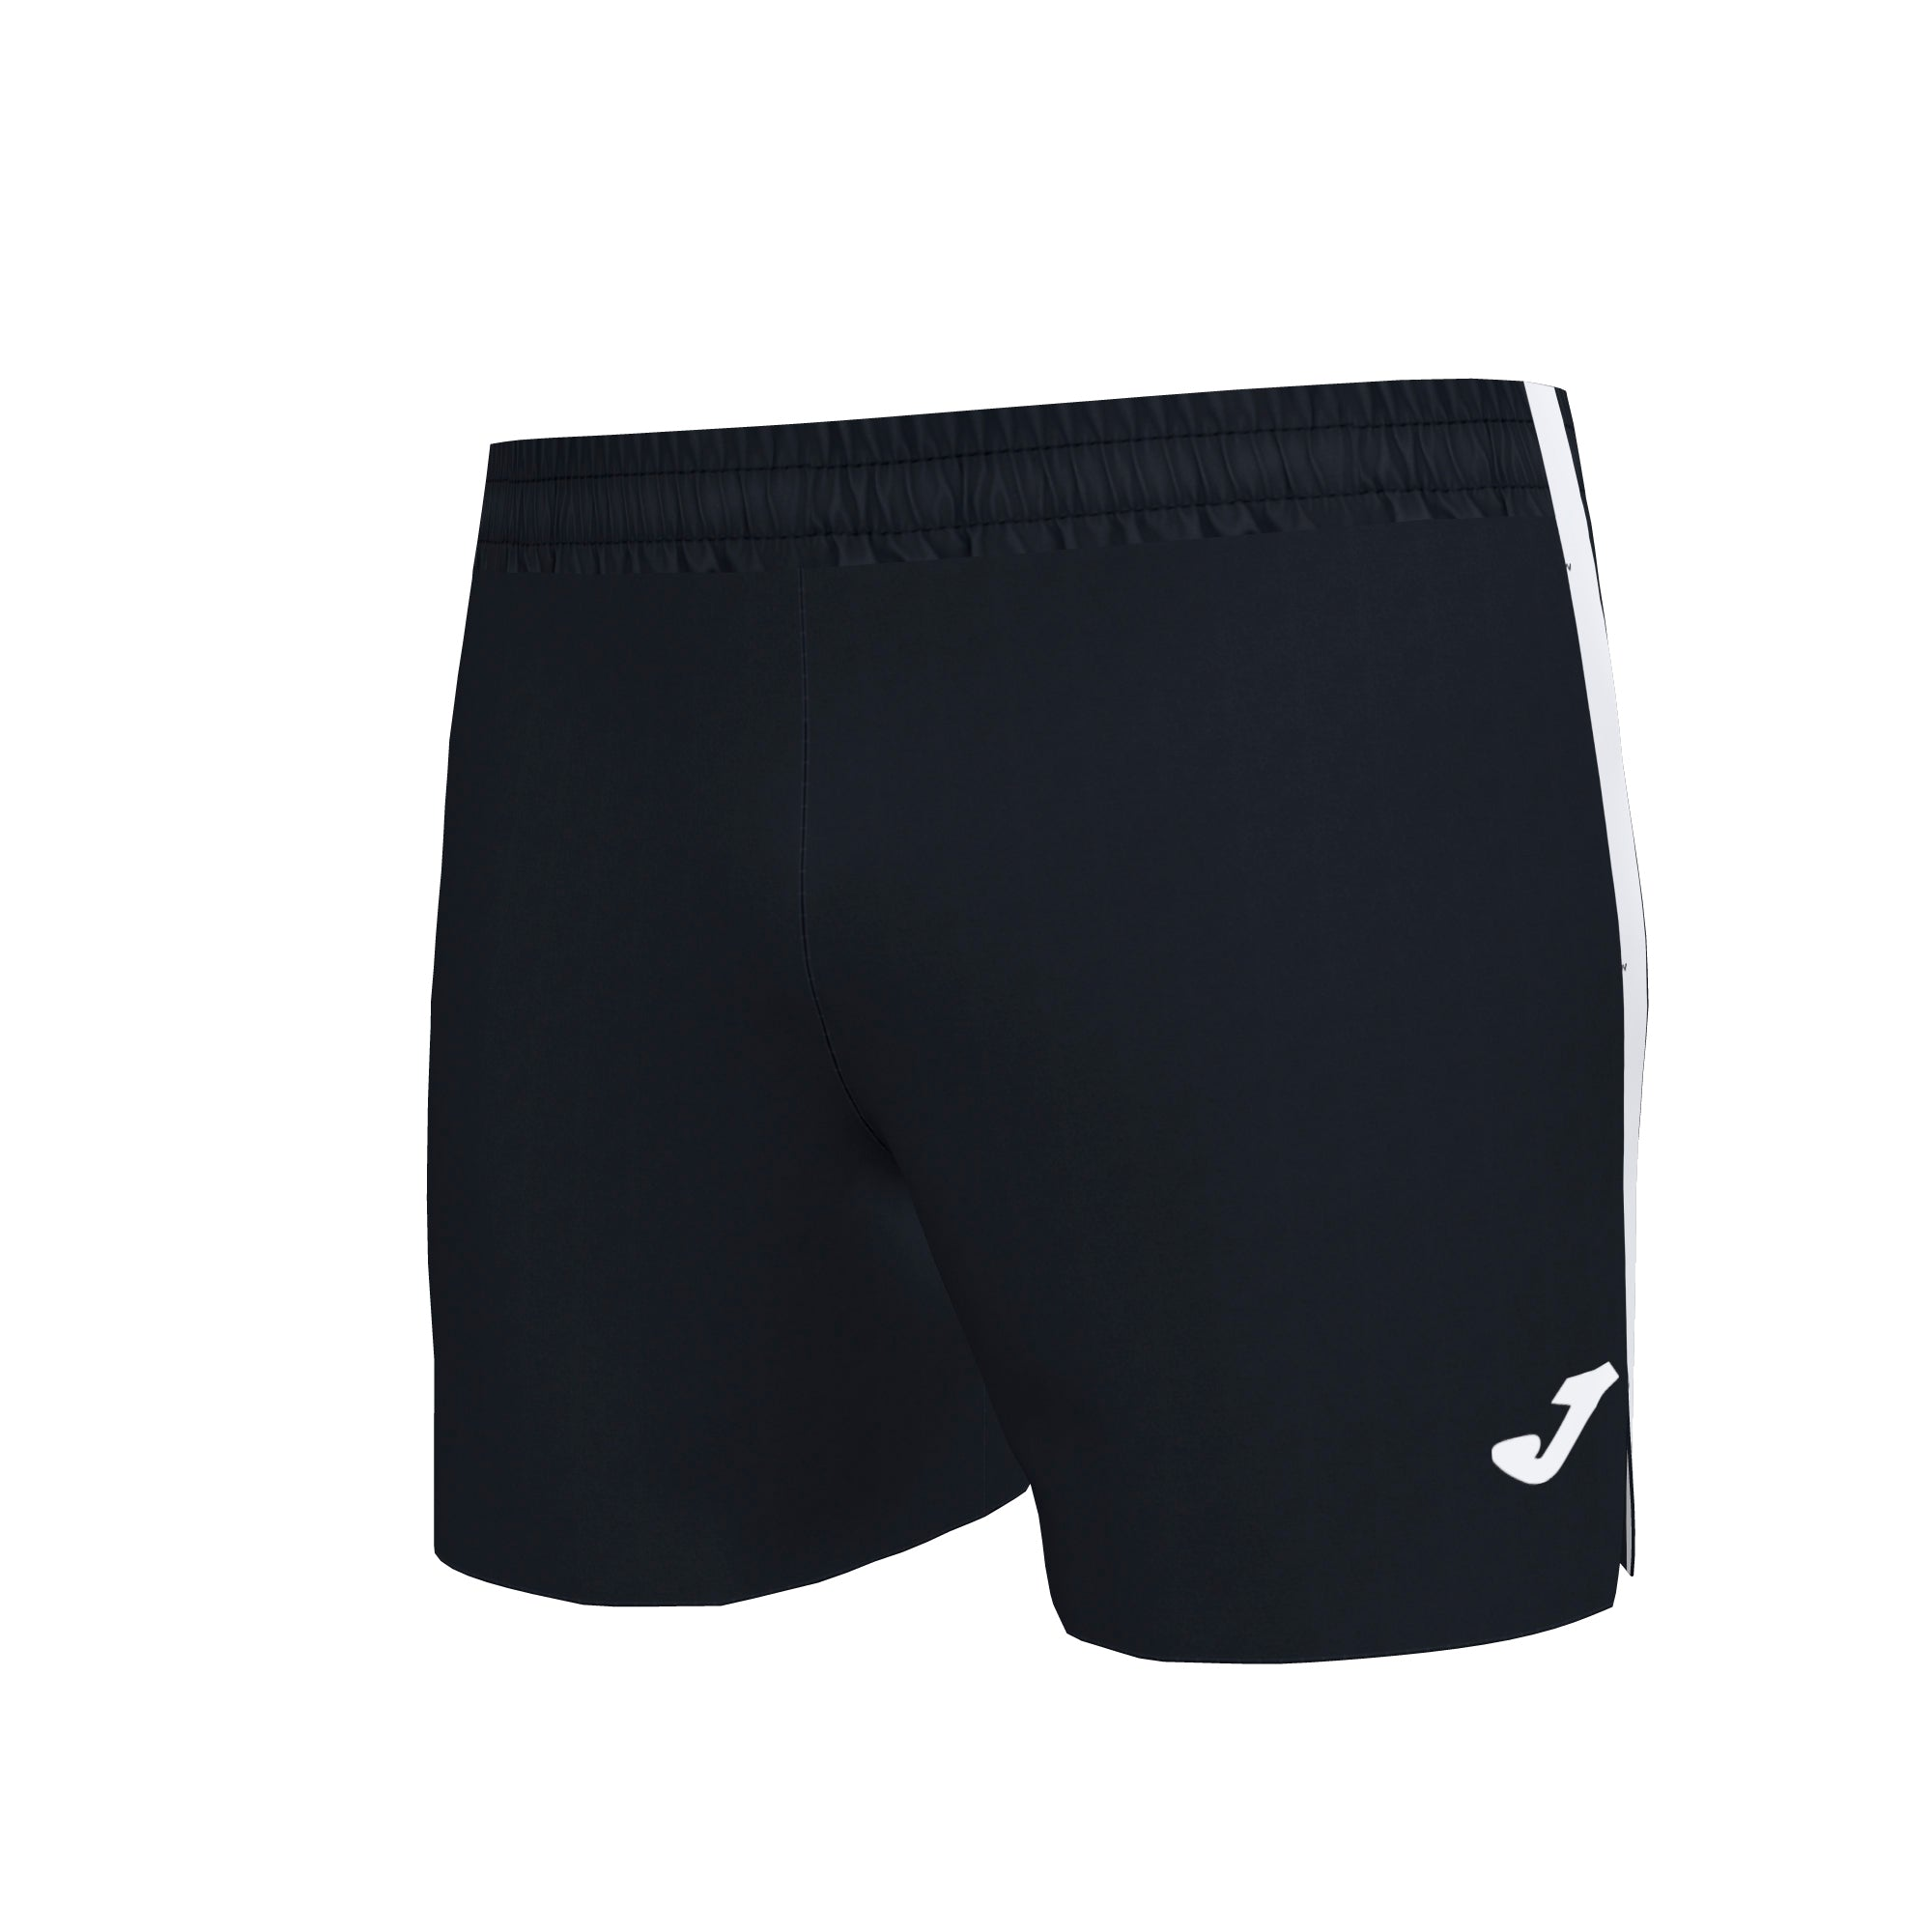 Joma Elite VII Running Short